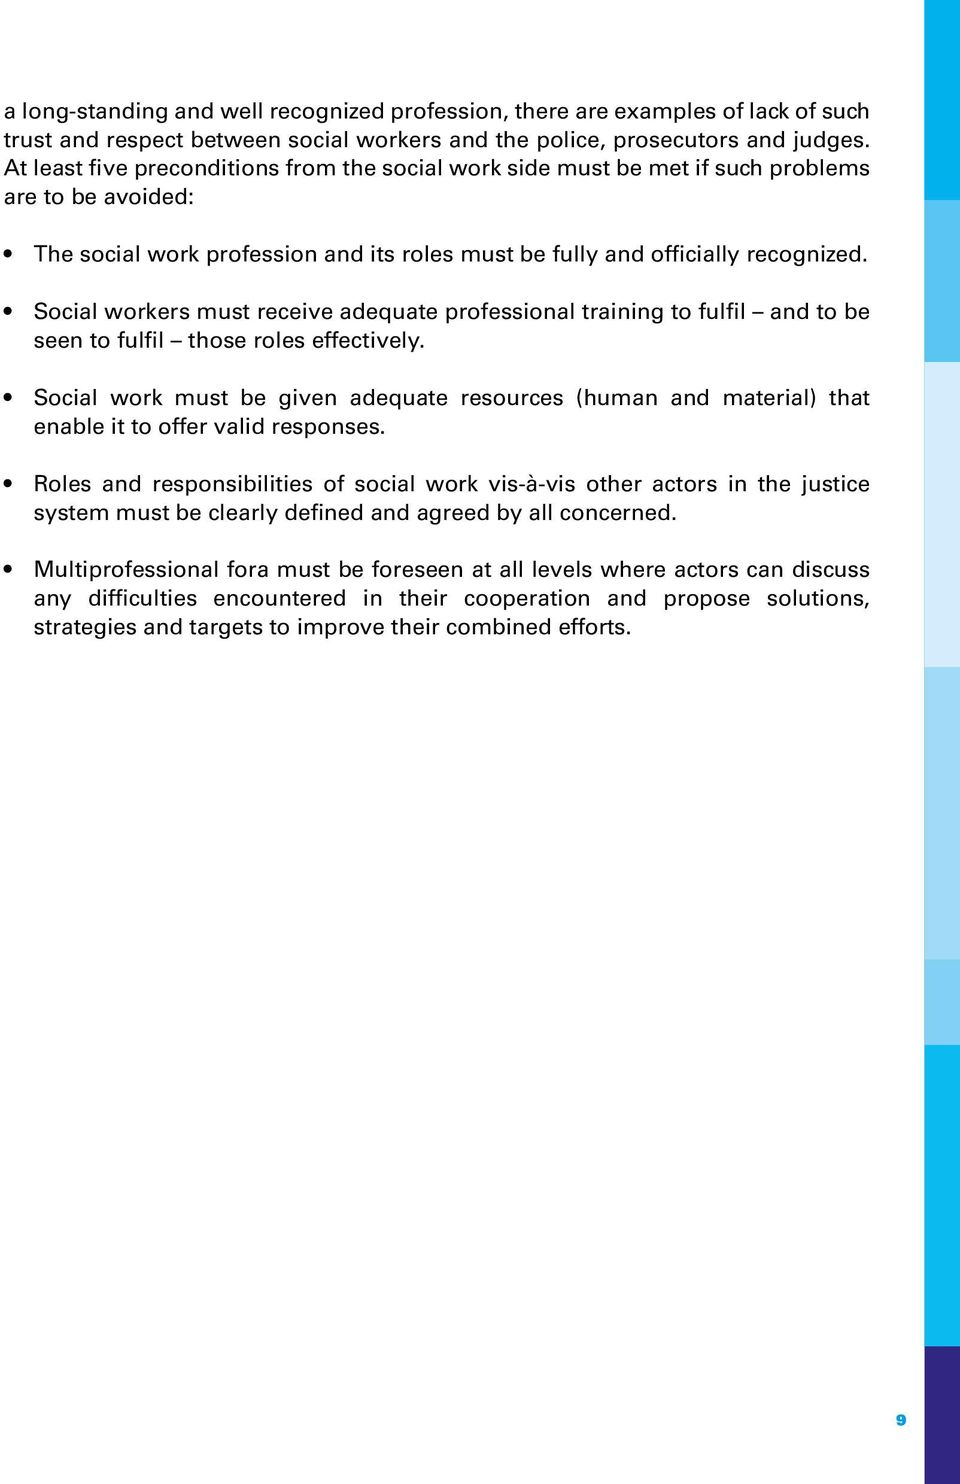 Social workers must receive adequate professional training to fulfil and to be seen to fulfil those roles effectively.